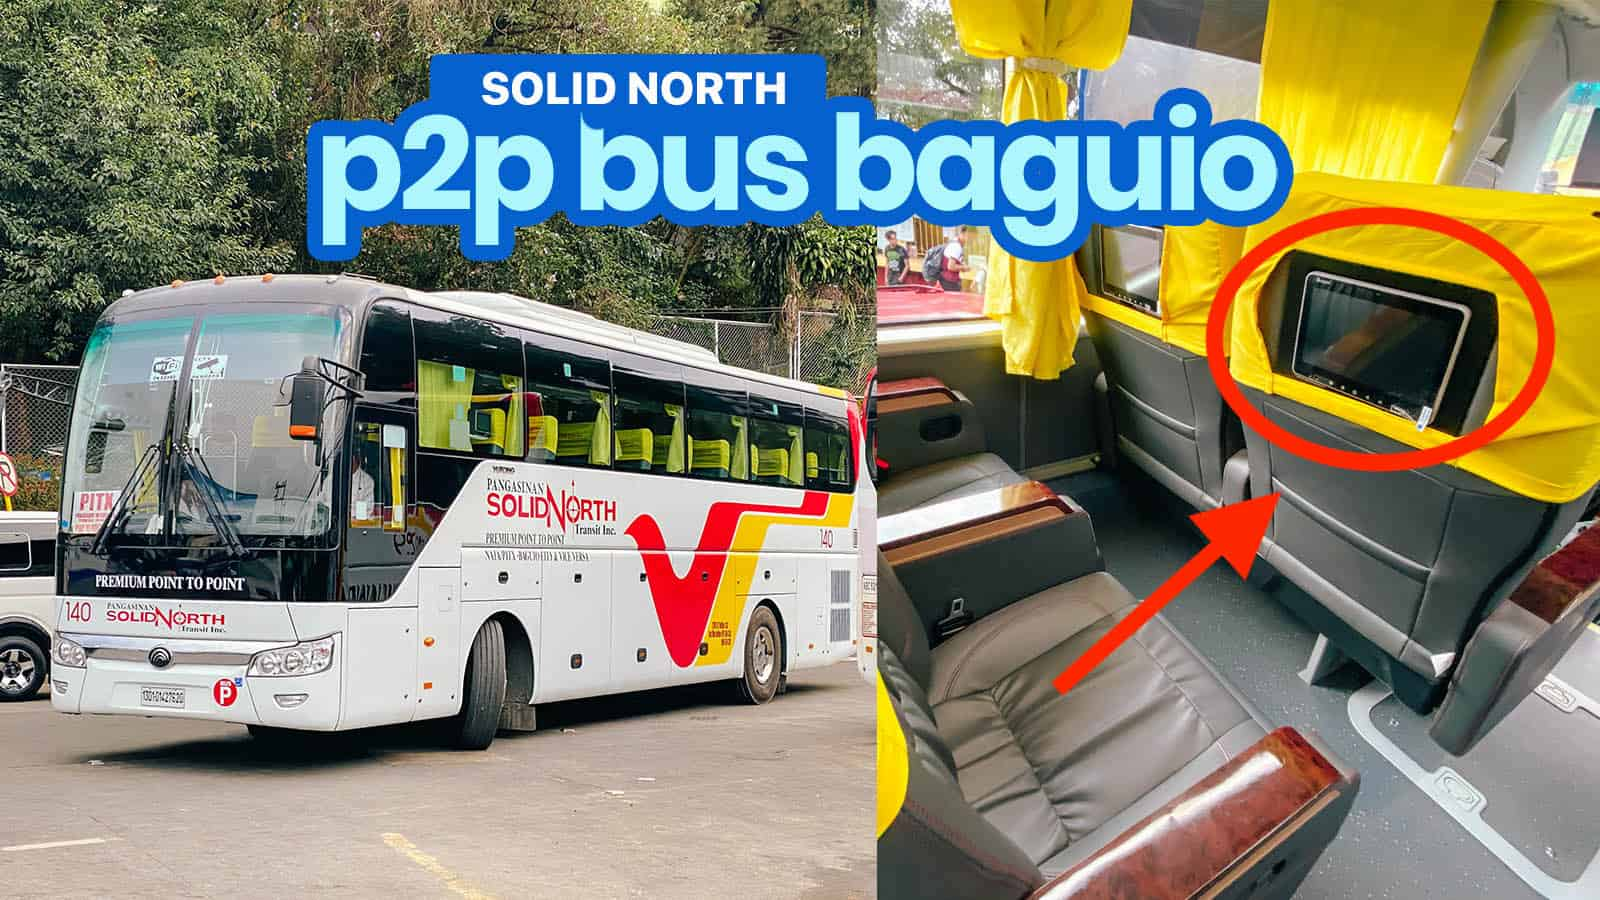 SOLID NORTH P2P BUS: PITX TO BAGUIO Schedule & Fare | The Poor Traveler Itinerary Blog